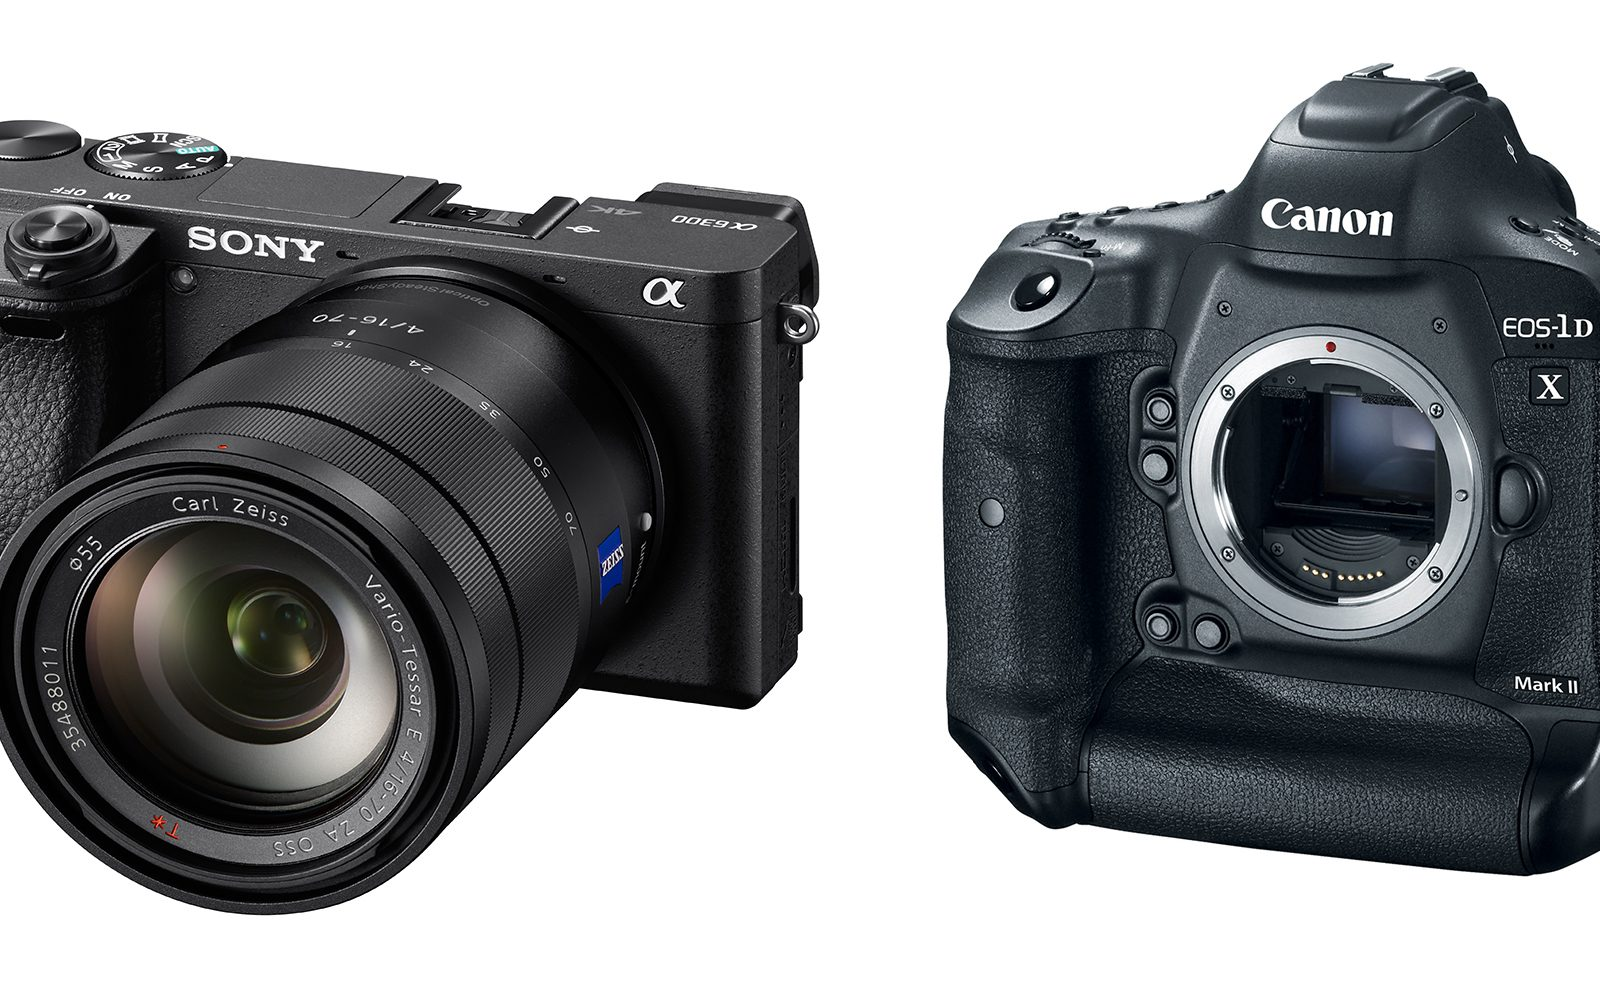 Sony and Canon introduce new 4K digital cameras with two very different price tags